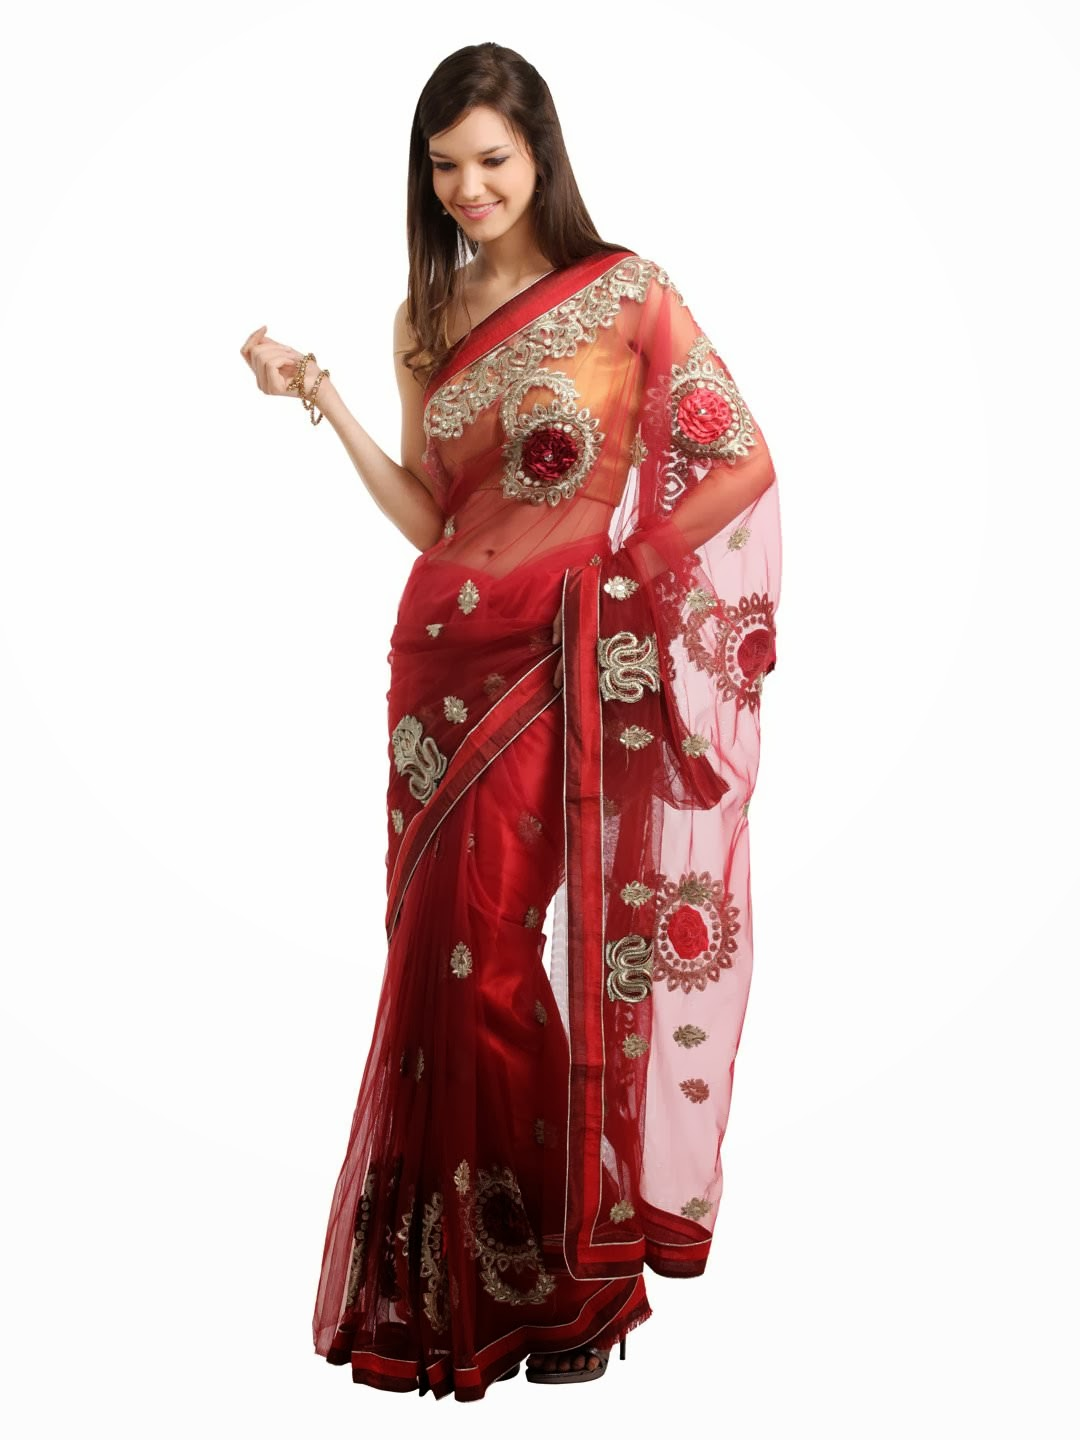 hindu single women in cocoa Why is it difficult to date an indian woman in general it is not difficult to date an indian girl what are the perks of dating an indian woman.